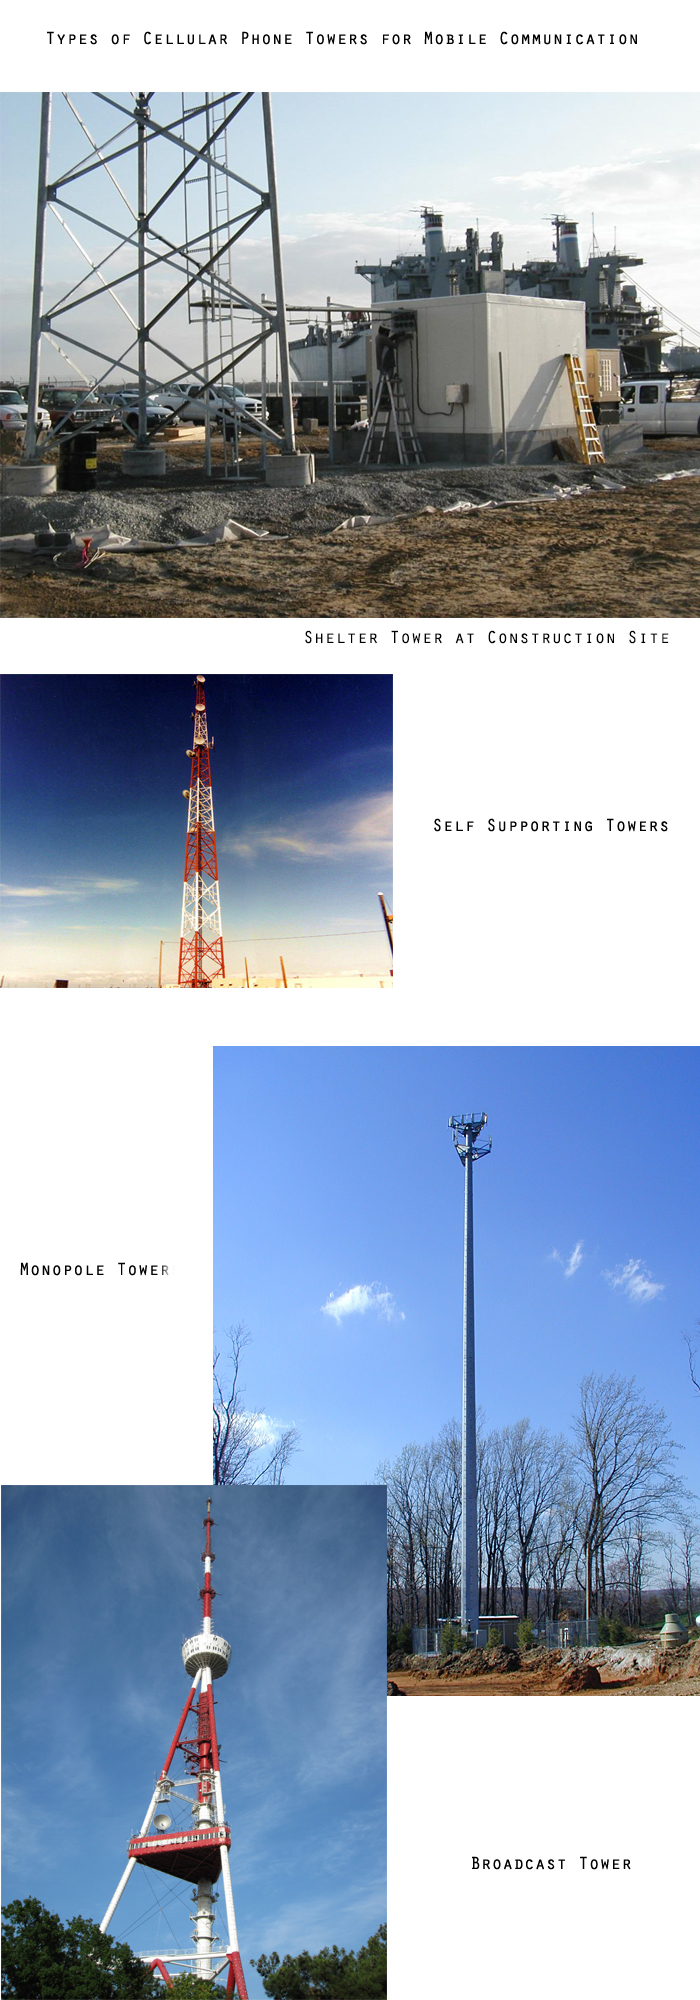 Types-of-Cellular-Phone-Towers-for-Mobile-Communication